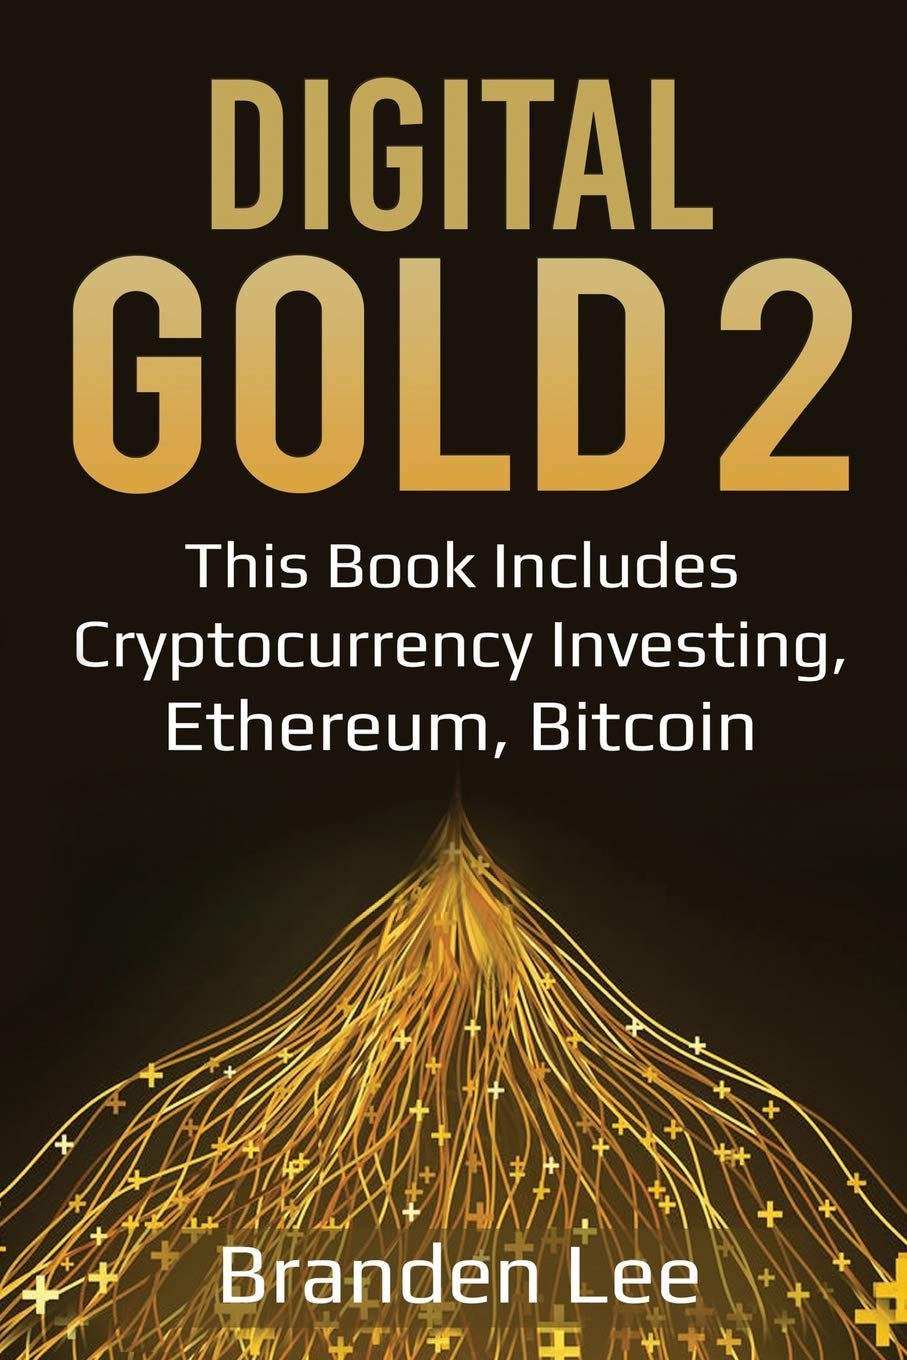 Digital Gold 2: This Book Includes- Cryptocurrency Investing, Ethereum, Bitcoin (Digtial Gold) PDF